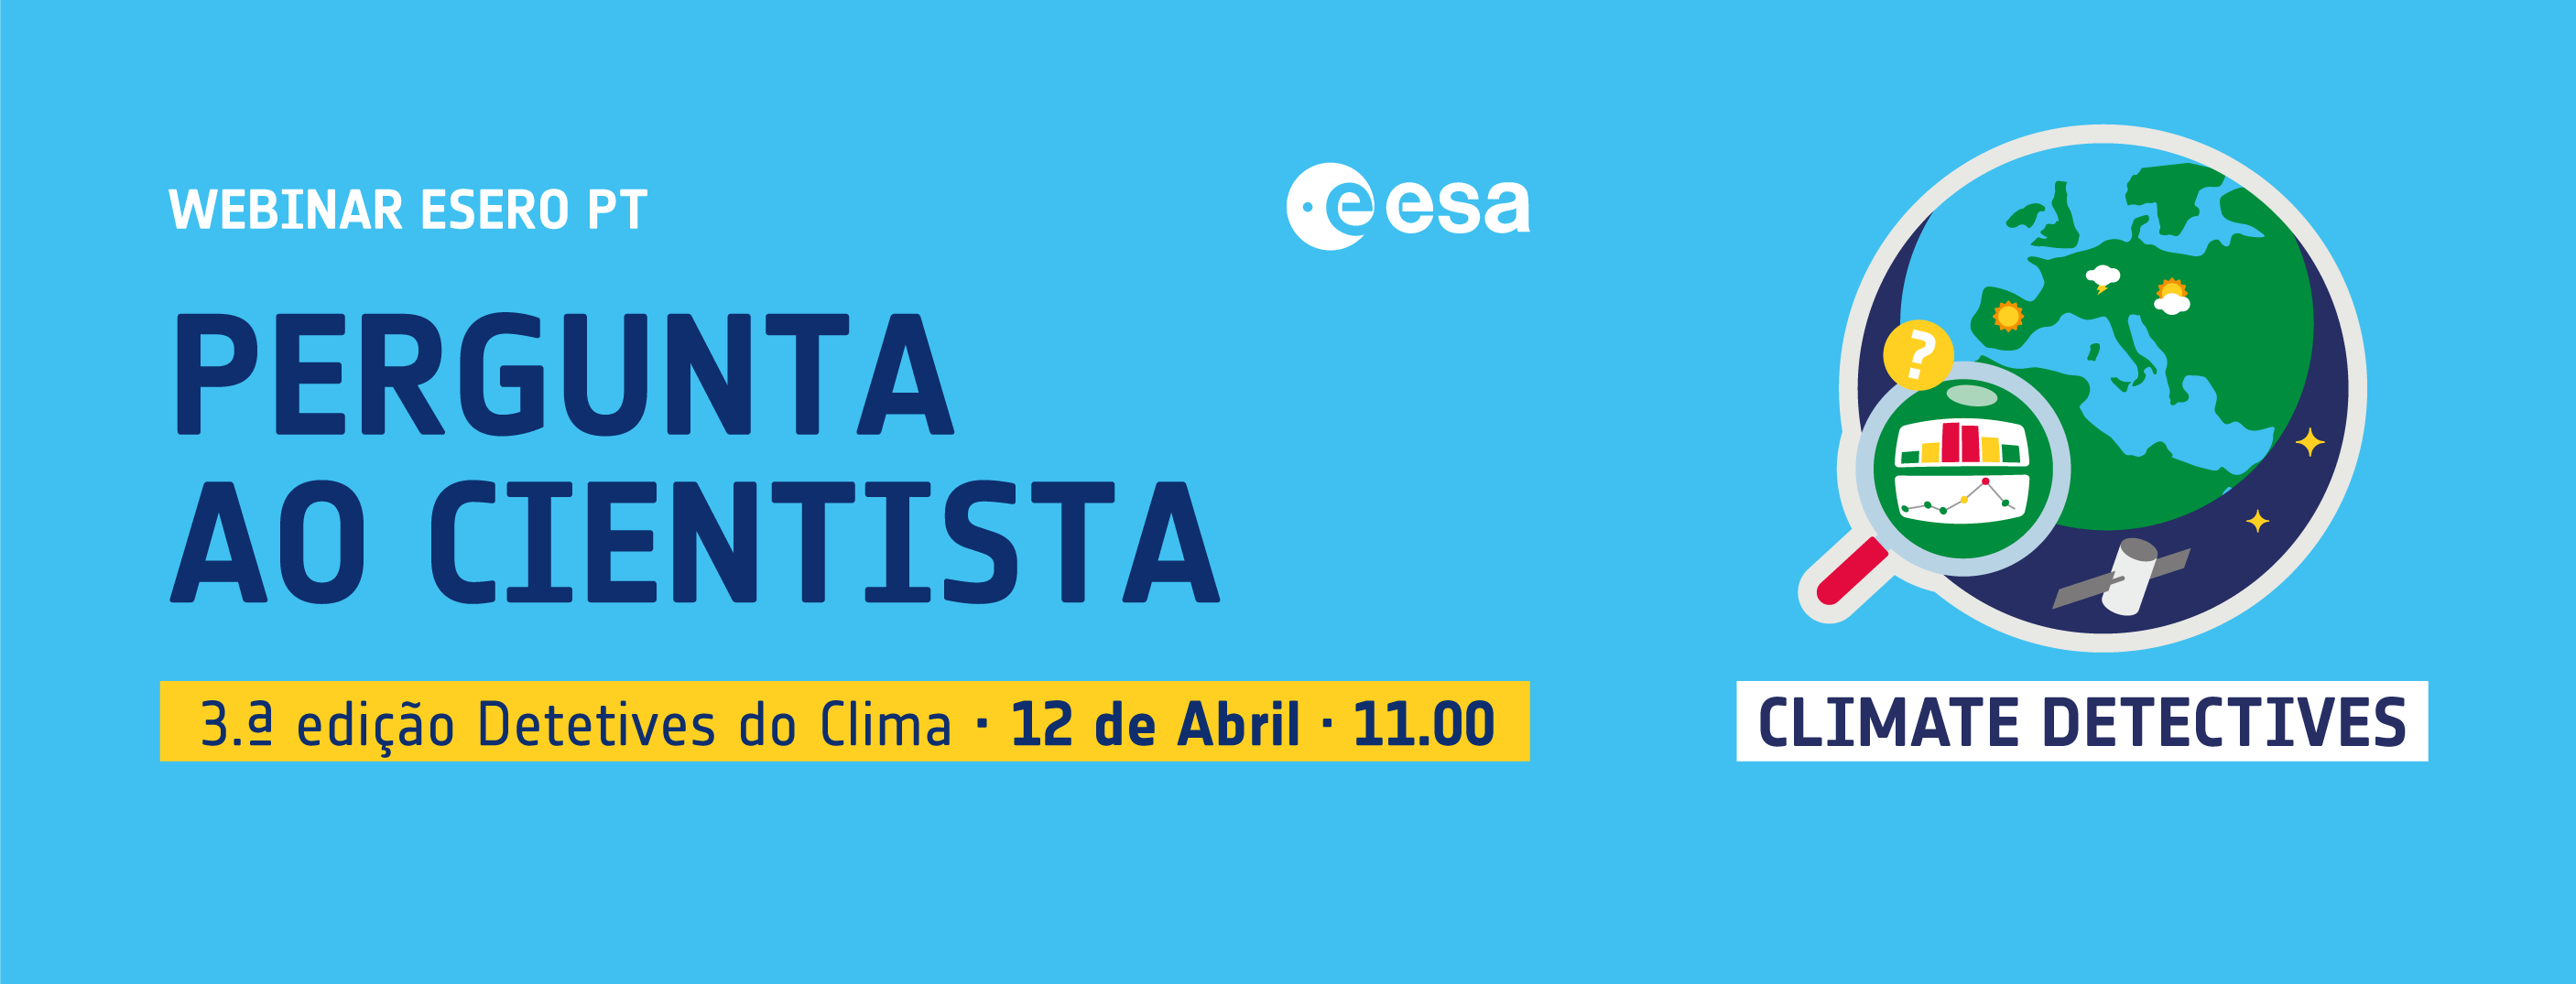 Detetives do Clima: Webinar ESERO PT | 12 Abril